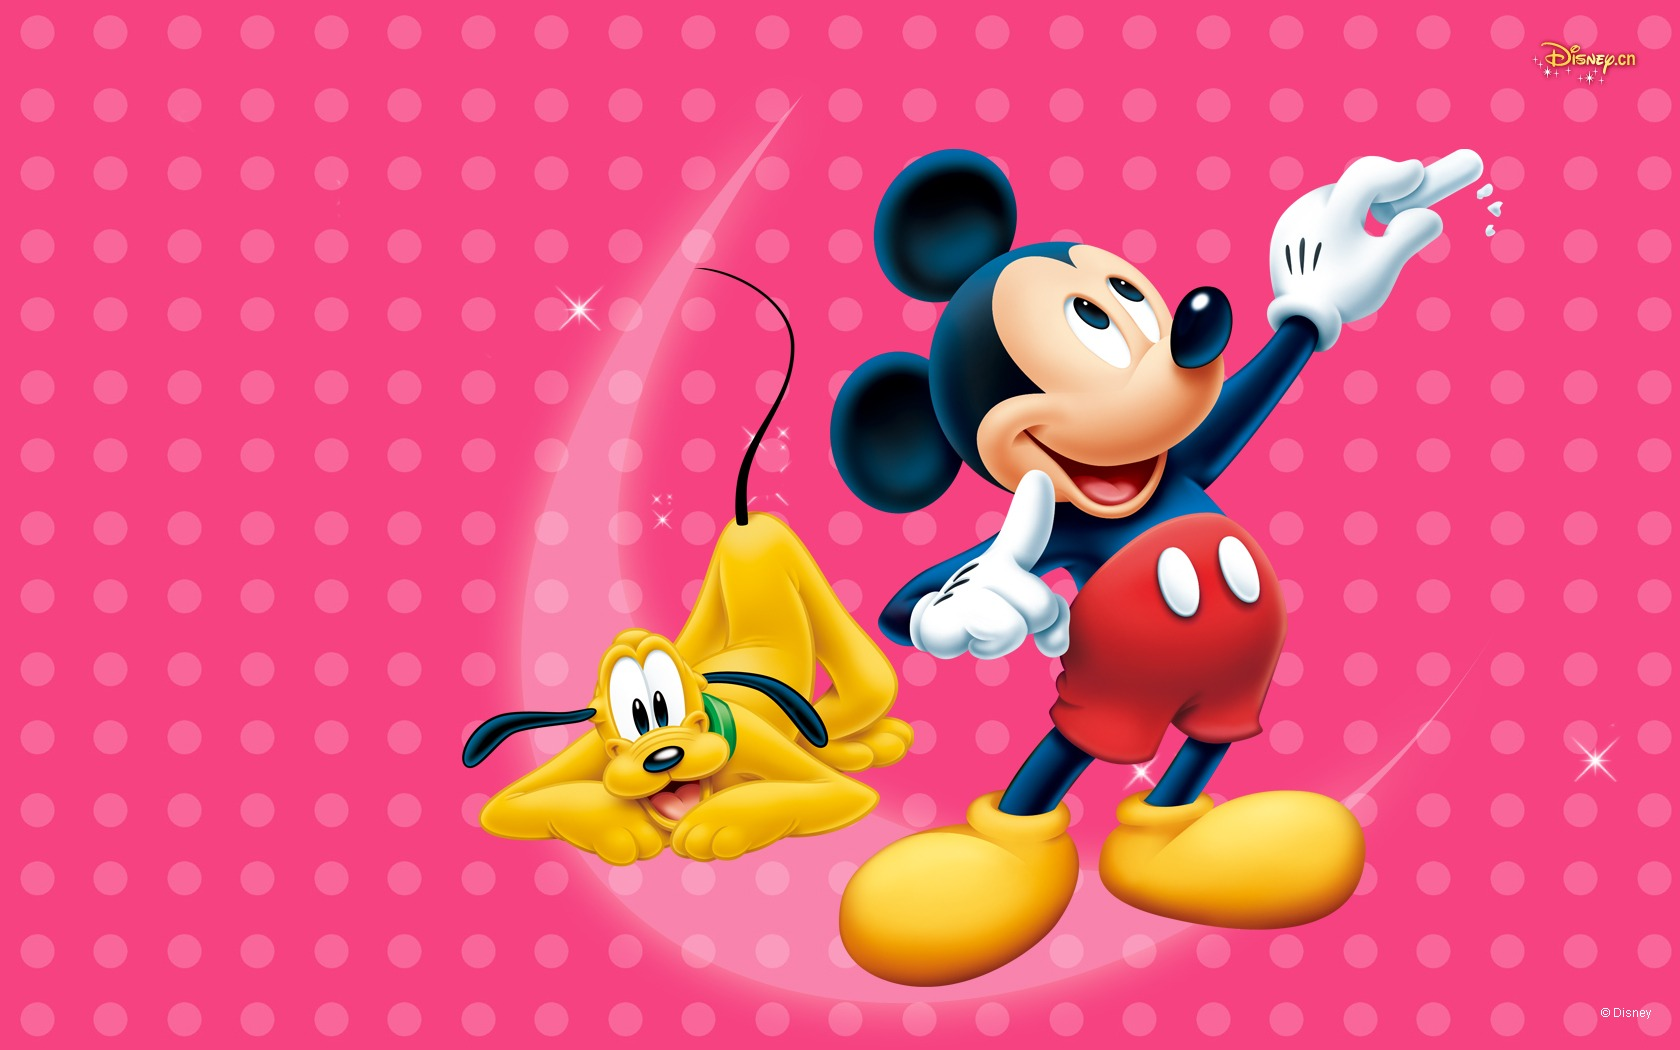 Mickey Minnie Mouse Wallpaper For Android Best Hd Wallpaper